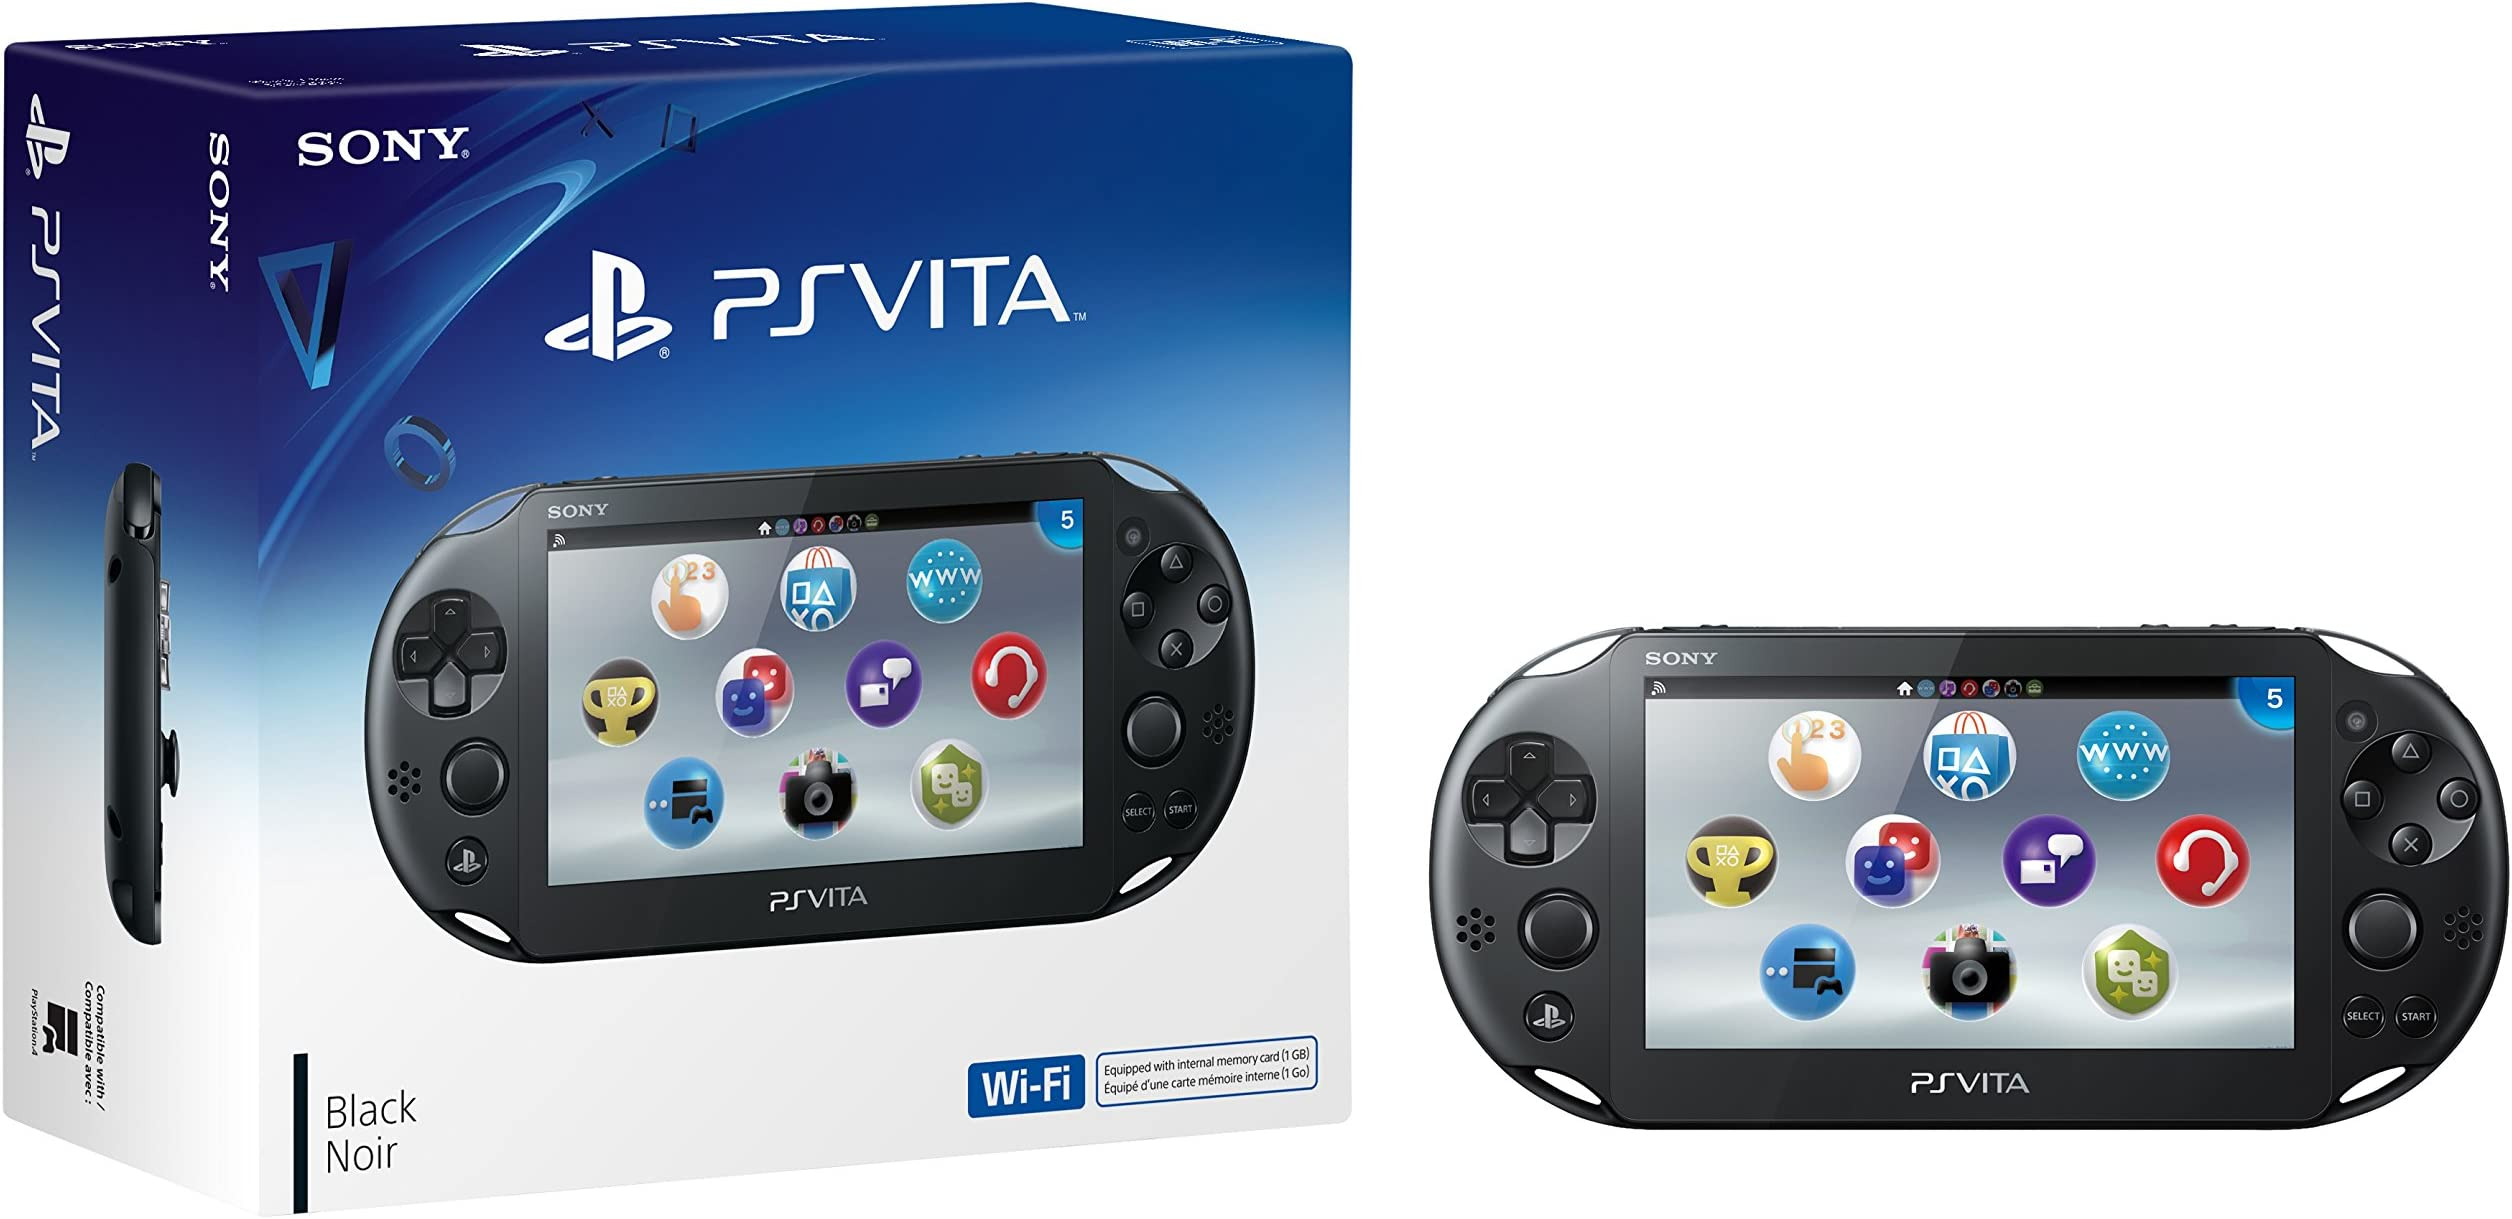 download android software on ps vita